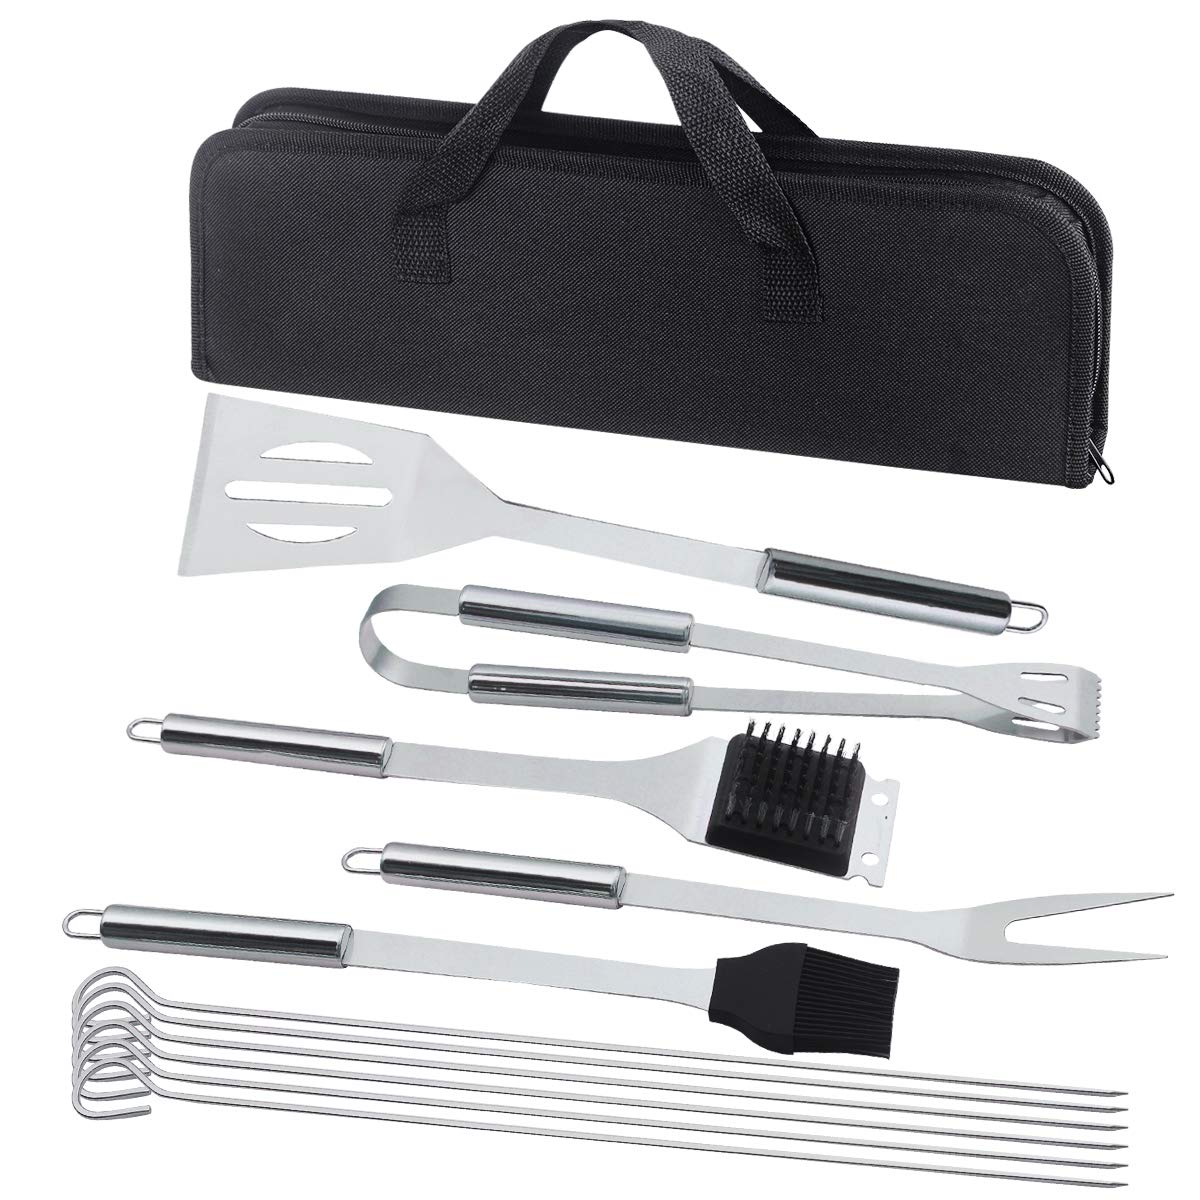 JOANBETE BBQ Grilling Set Stainless Steel Utensils Barbecue Tool Set Grill Accessories with Case - Outdoor Grilling Kit (11-Piece)